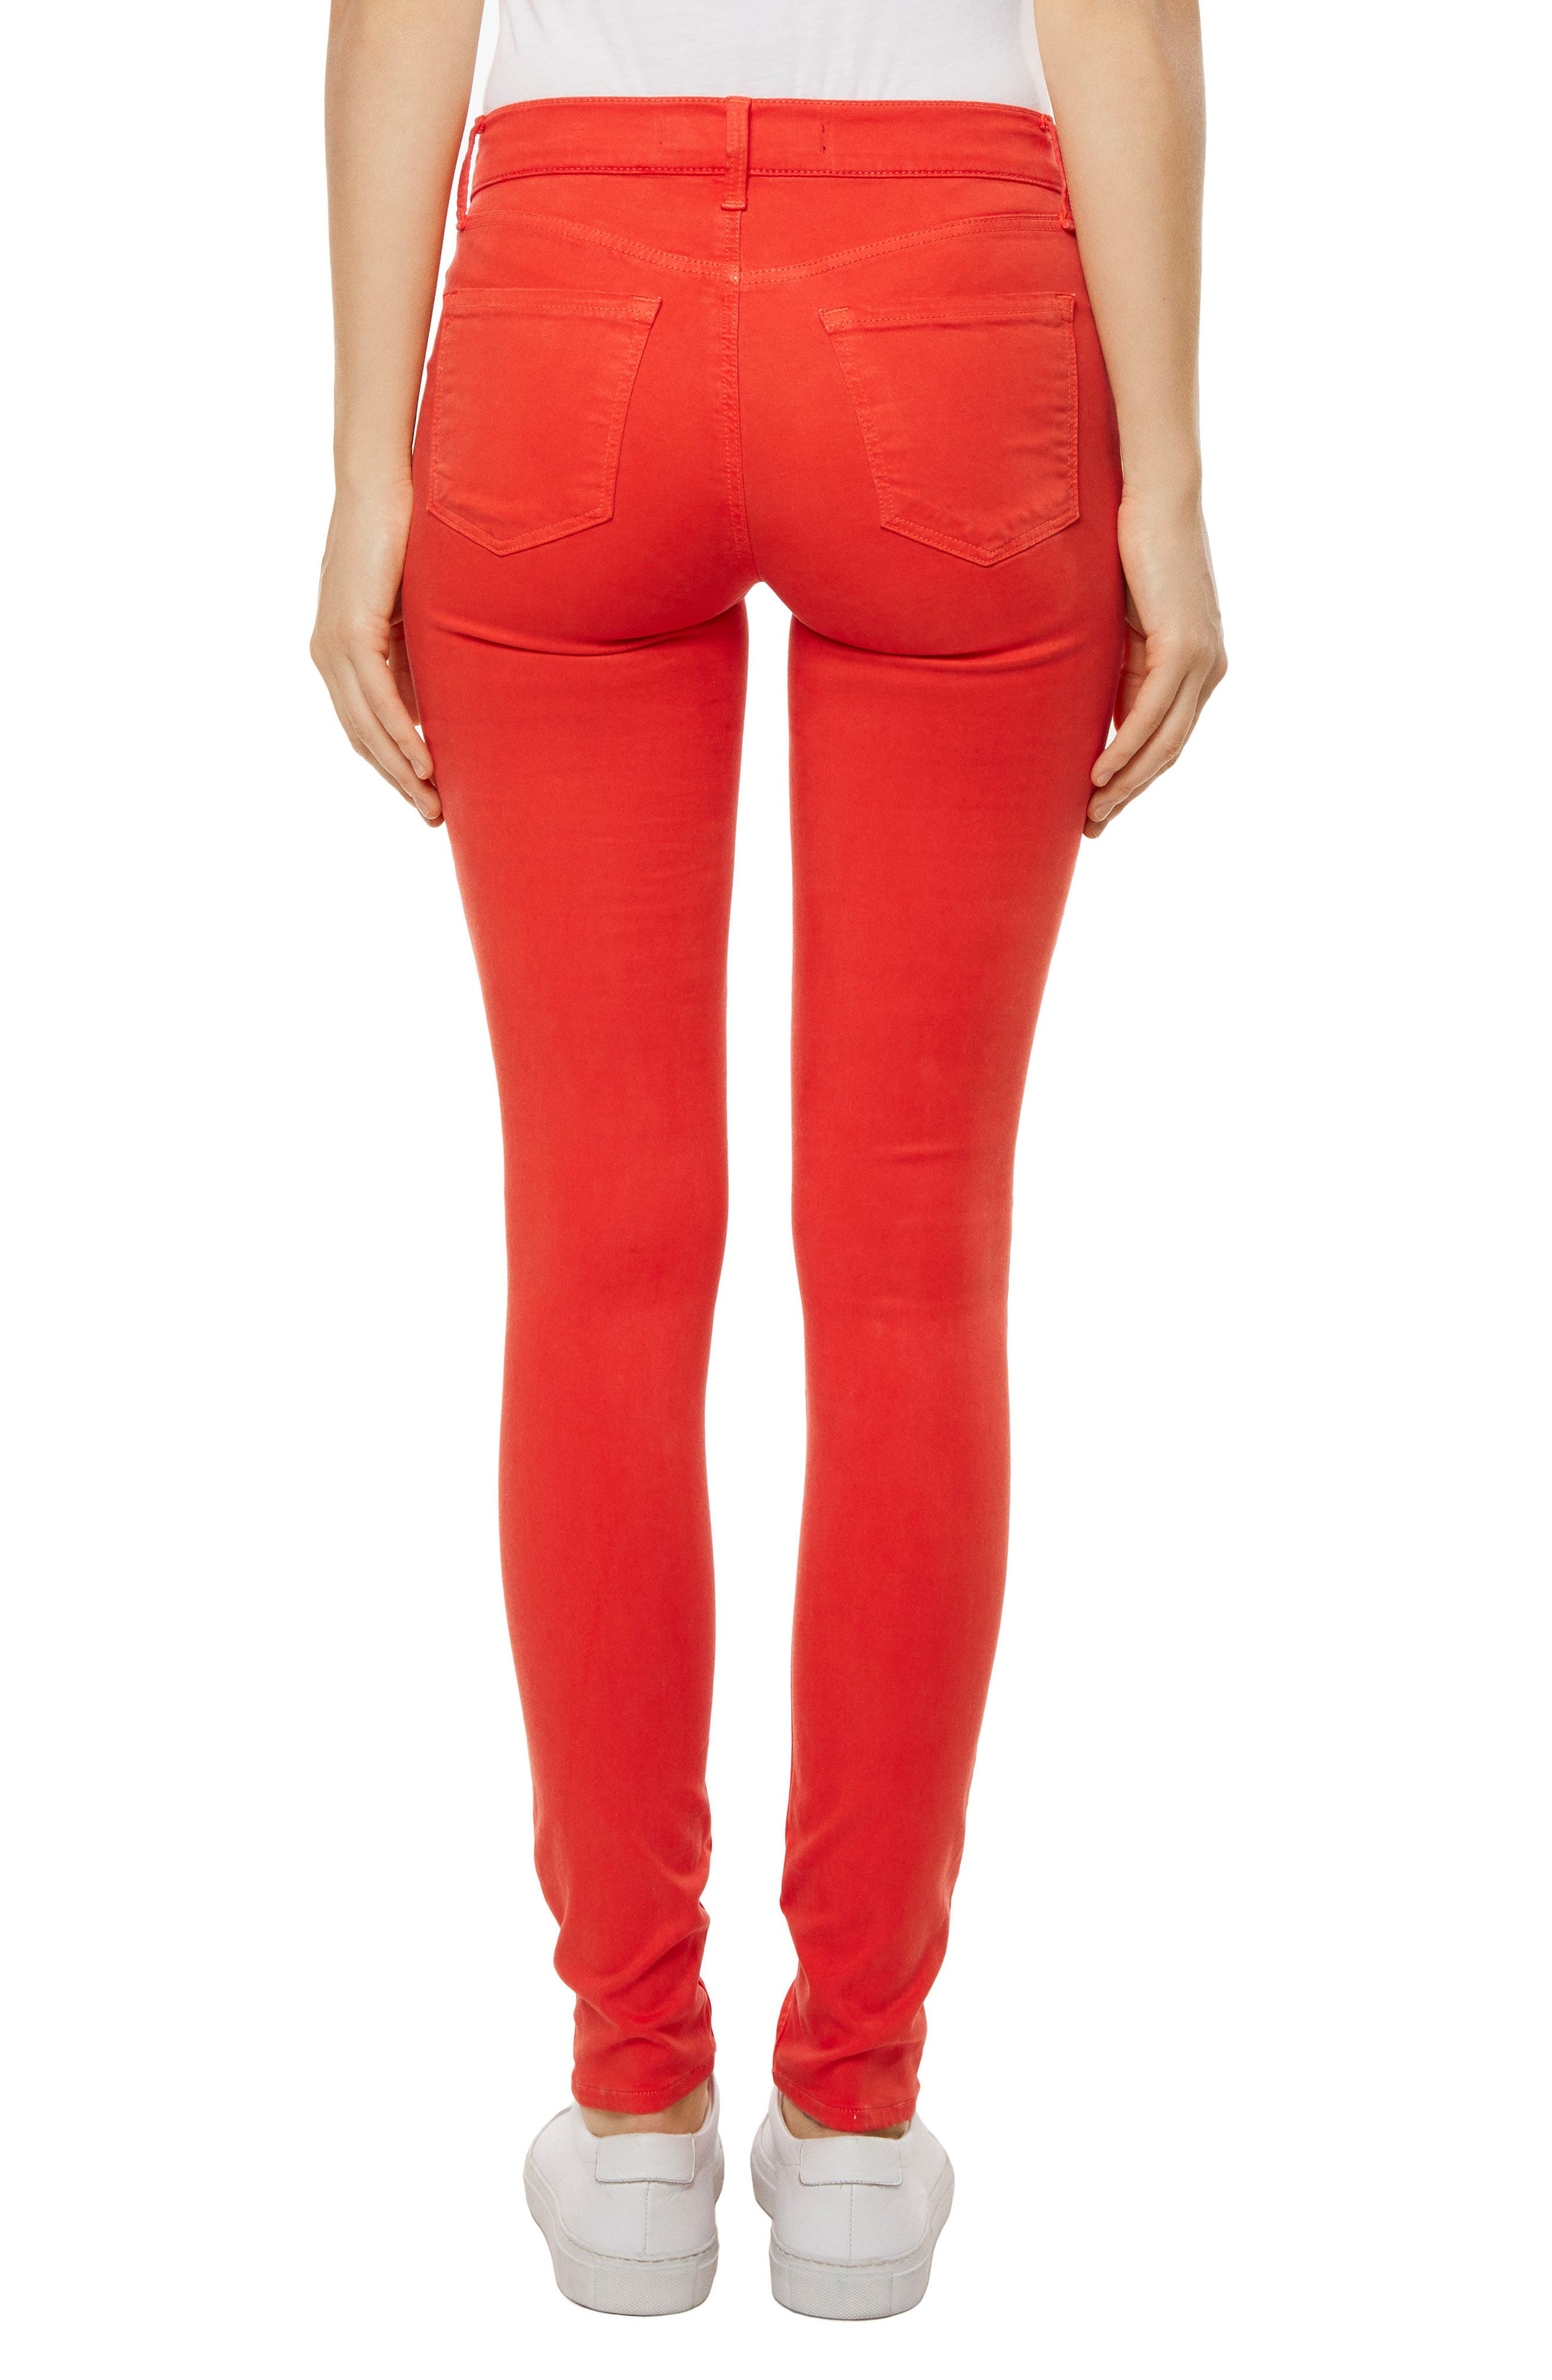 485 Mid Rise Skinny Jeans,                             Alternate thumbnail 2, color,                             Bright Coral